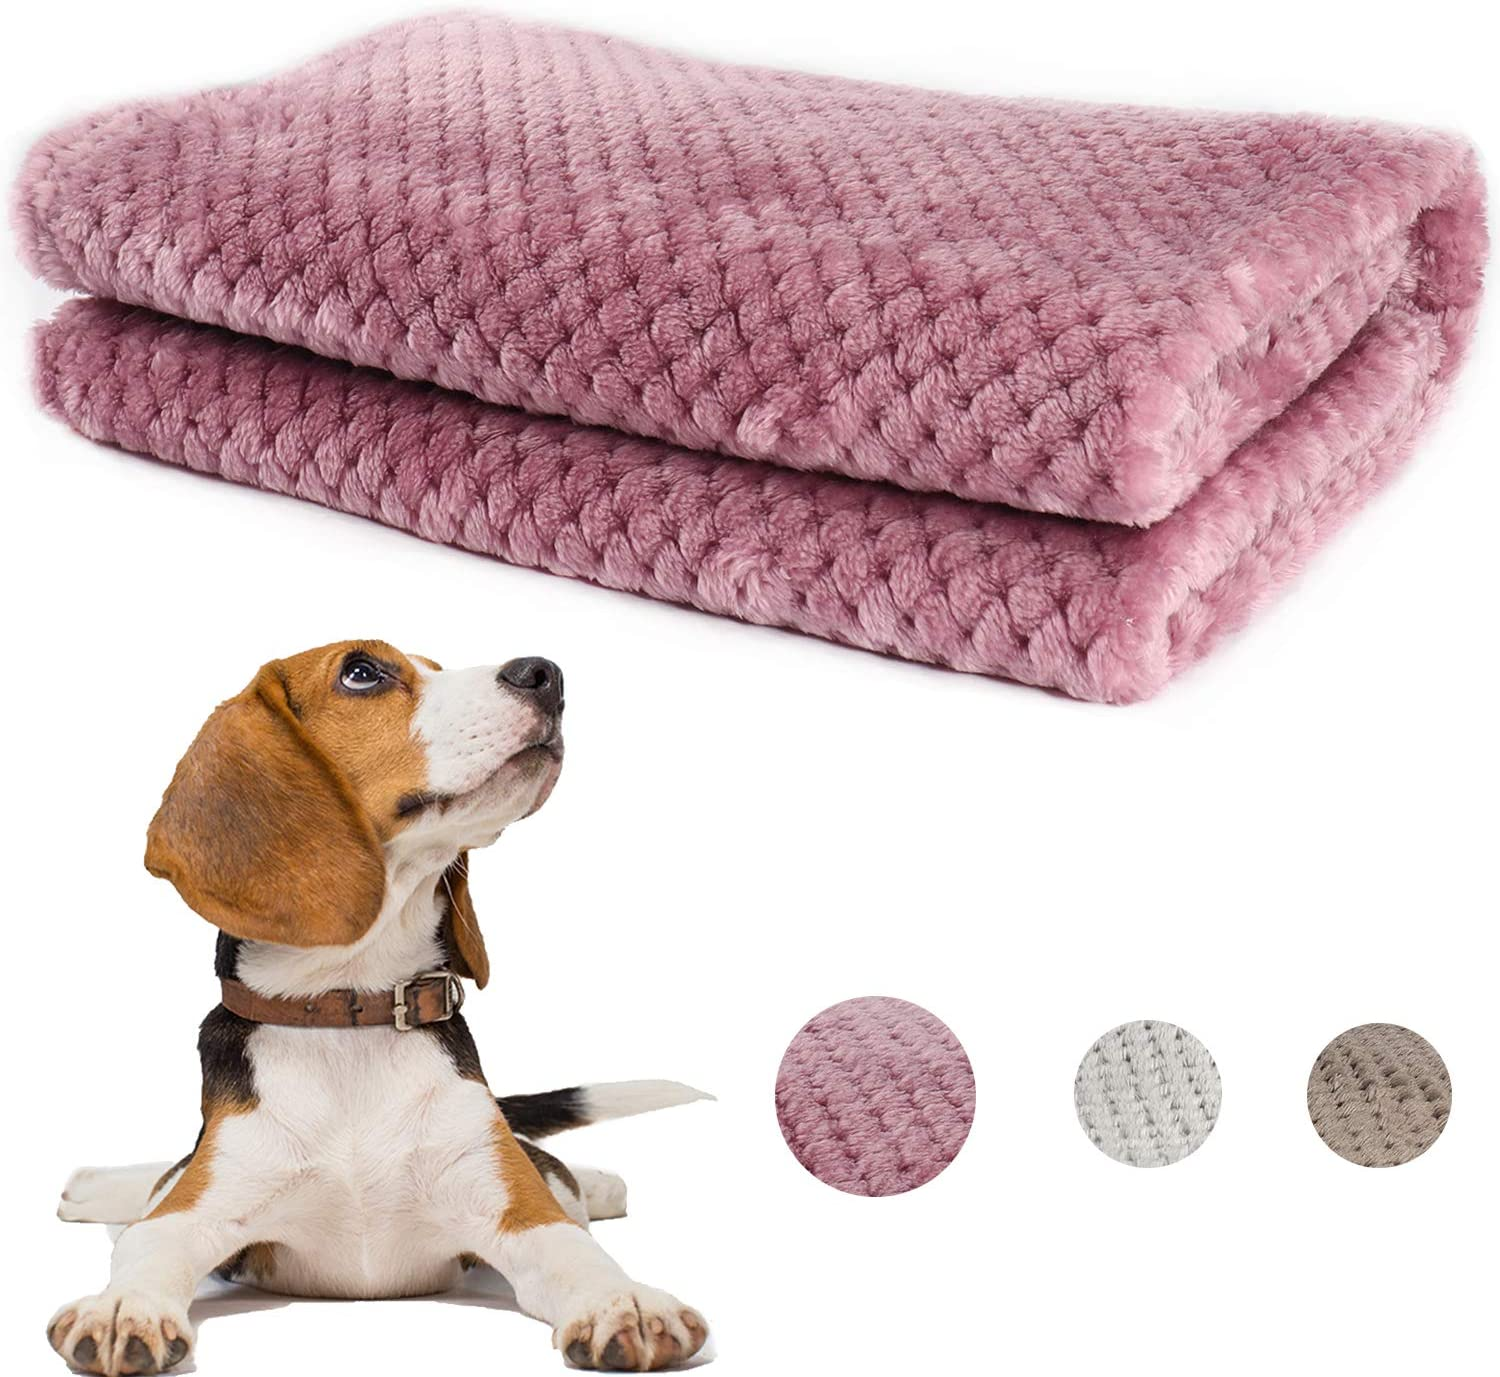 Less bad Lifeunion Premium Fluffy Dog Blanket Extra Soft and Warm Reversible Pet Throw Blankets Bed Couch Car Seat Cover Mat for Small Medium Large Dogs Cats